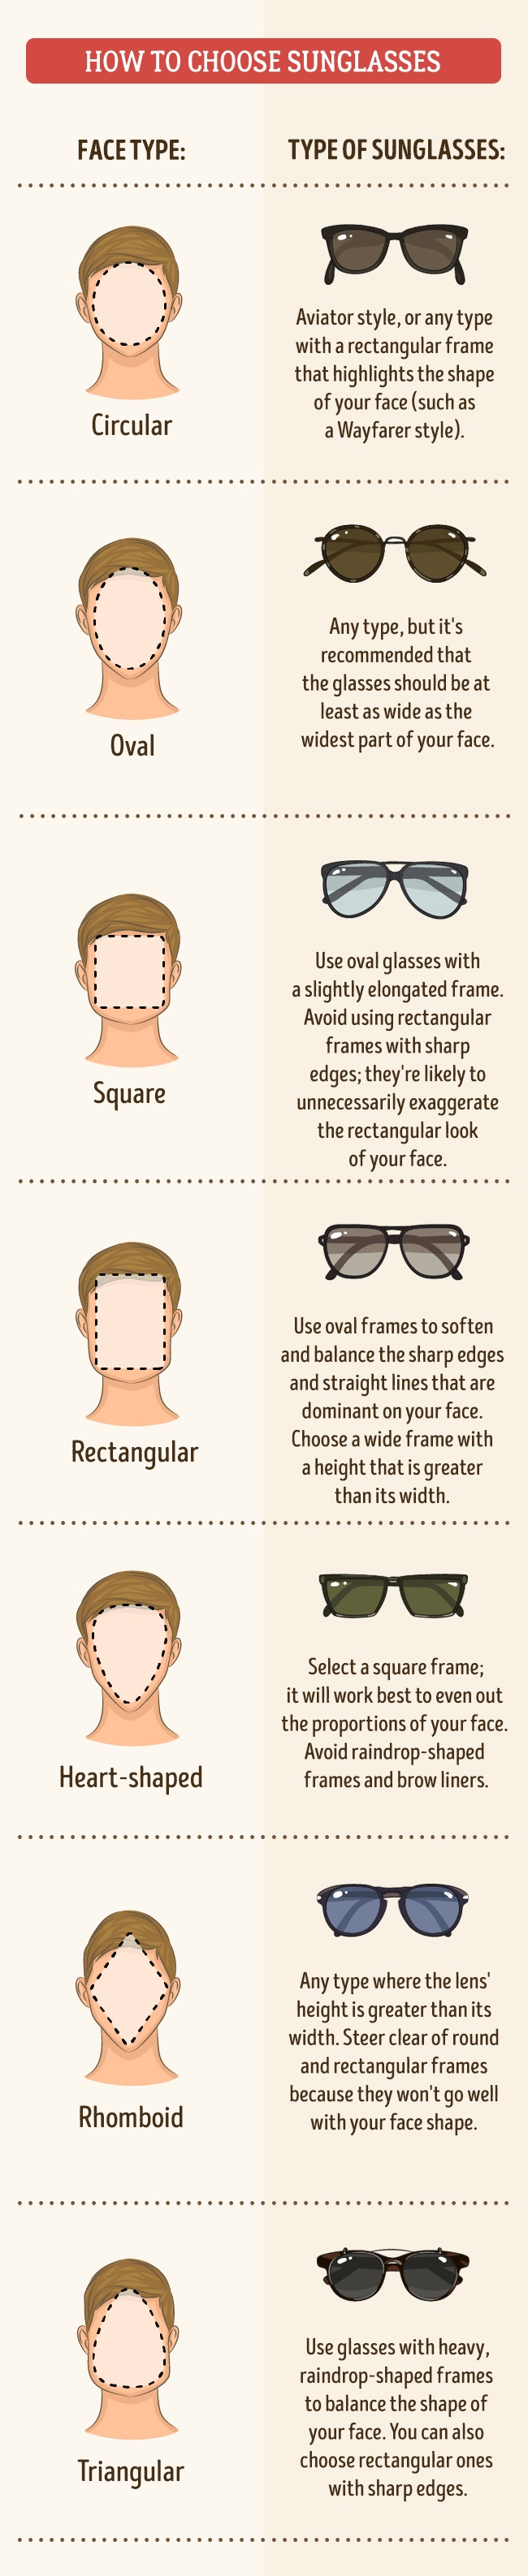 Sunglasses for faces